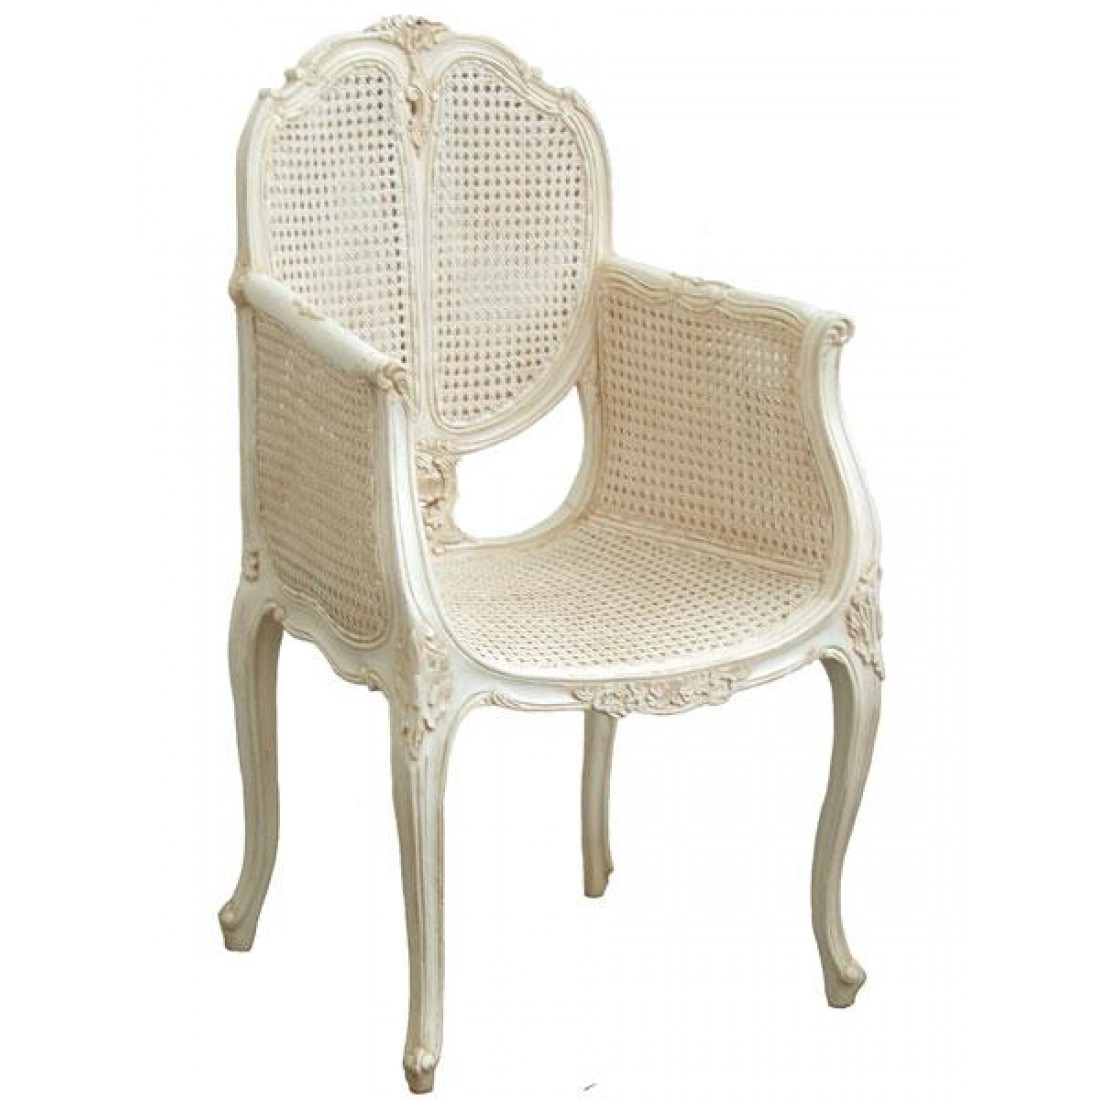 Bedroom chair with rattan french chair french bedroom for Bamboo furniture uk